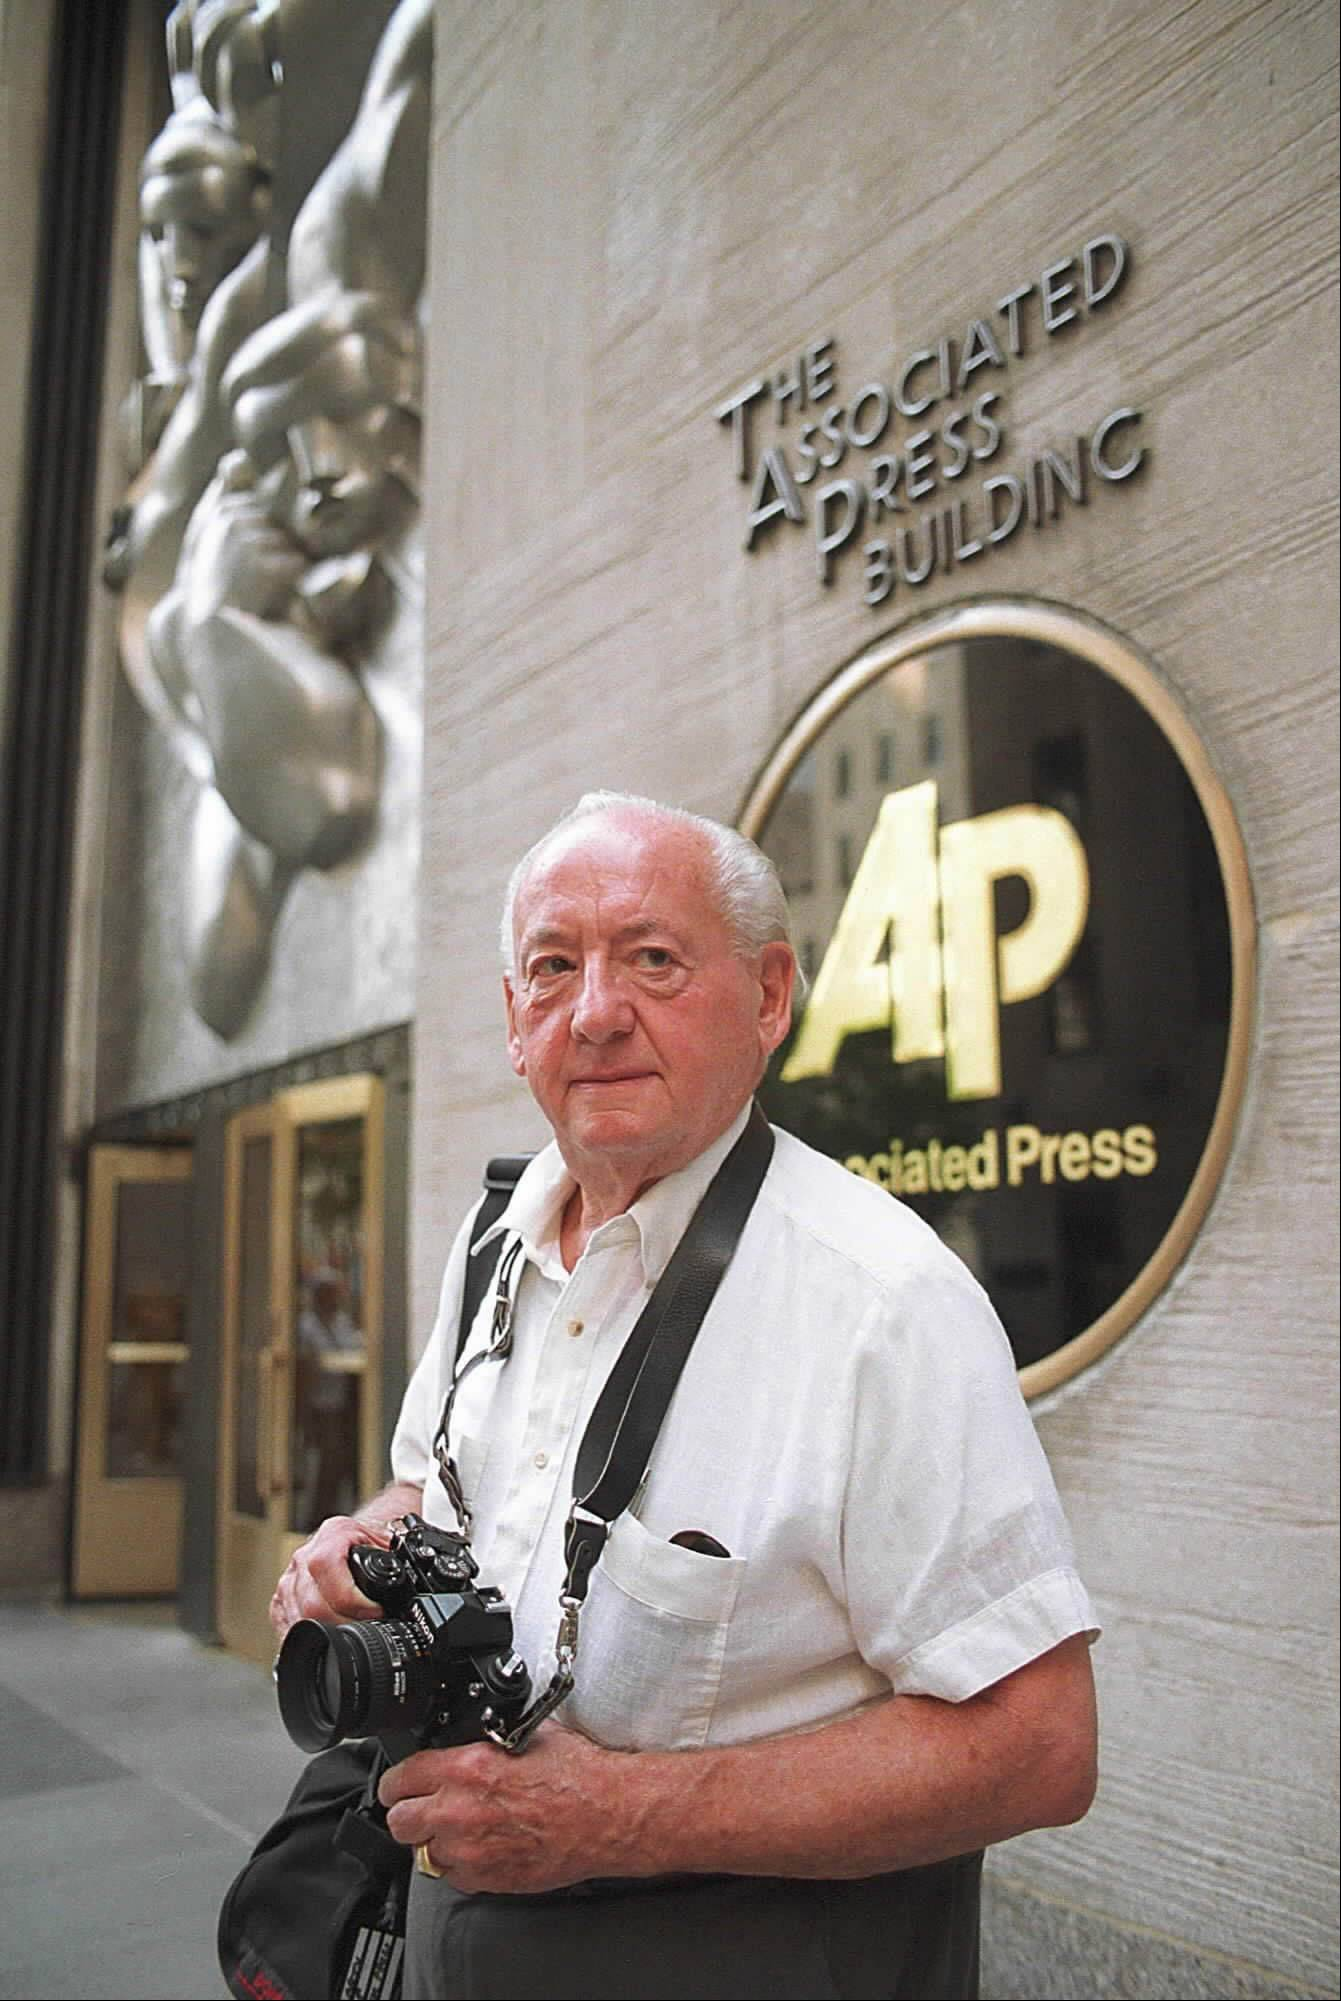 "On Sept. 11, 2001, photographer Marty Lederhandler knew the real story was downtown. But he also knew that the trains weren't going that way, and his 84-year-old legs wouldn't carry him that far. ""If there's obstacles in your path, you try some other way,"" he had said in an interview. ""You go behind. You go in back. You go up high."" Lederhandler took the elevator to the 65th floor and the famed Rainbow Room at 30 Rockefeller Plaza, which he knew would offer a stunning view of the Empire State Building and the Twin Towers beyond, and began shooting. ""The only other story that compares to this is D-Day,"" said Lederhandler, who died in March 2010 at the age of 92."